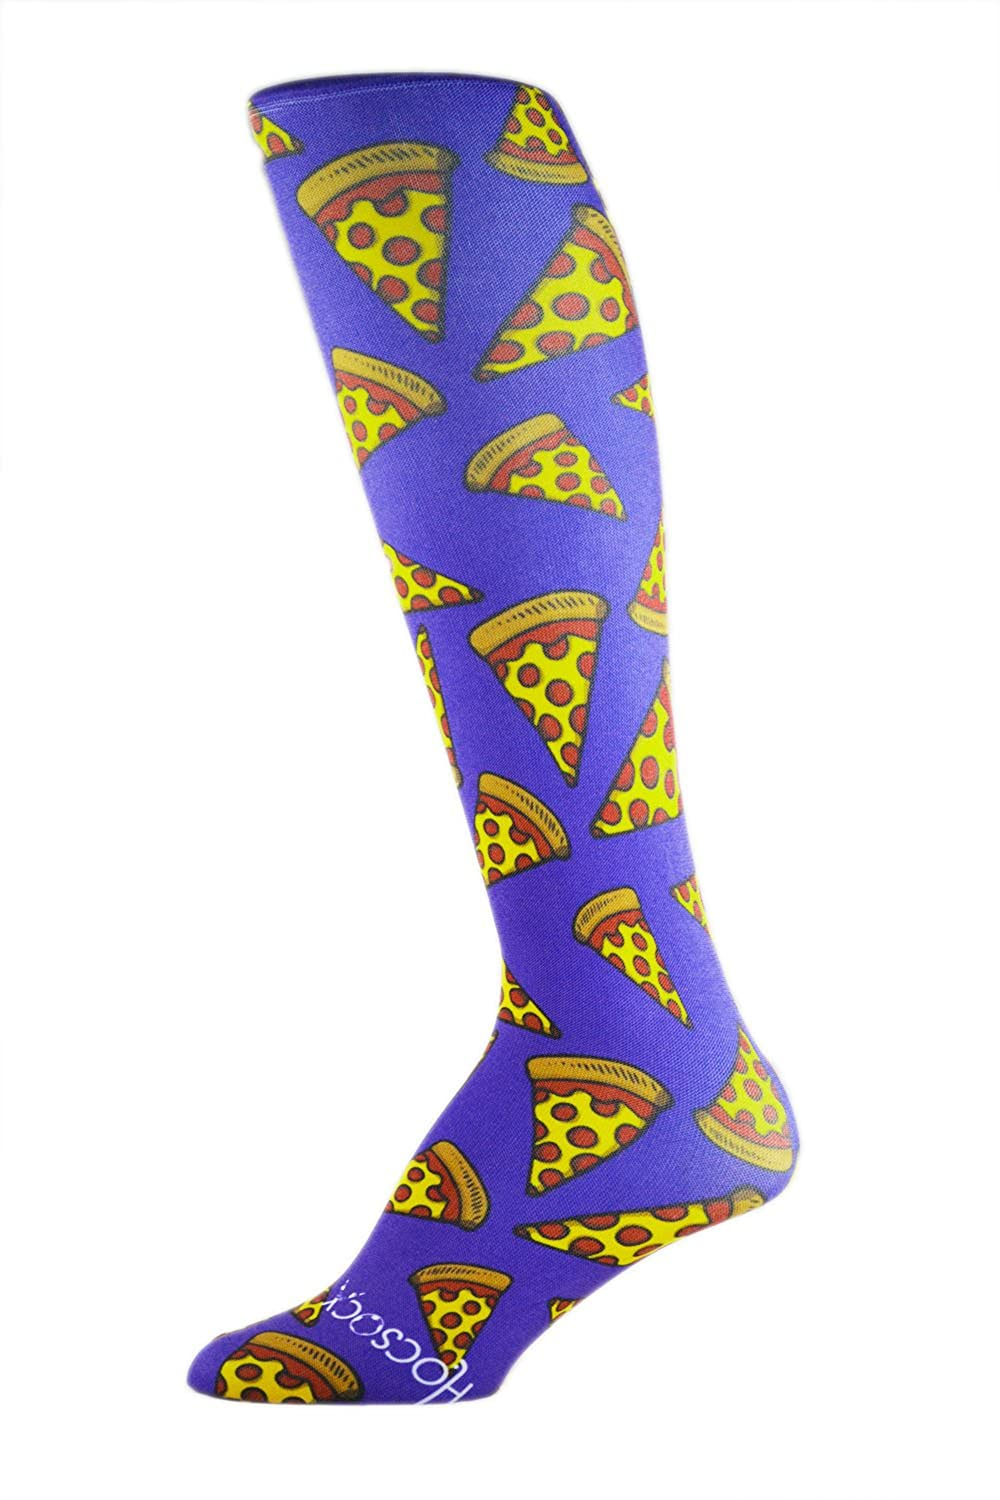 Hocsocx Shin Liners UNDER shin pad socks for Football//Hockey for girls and women-Fun Patterns